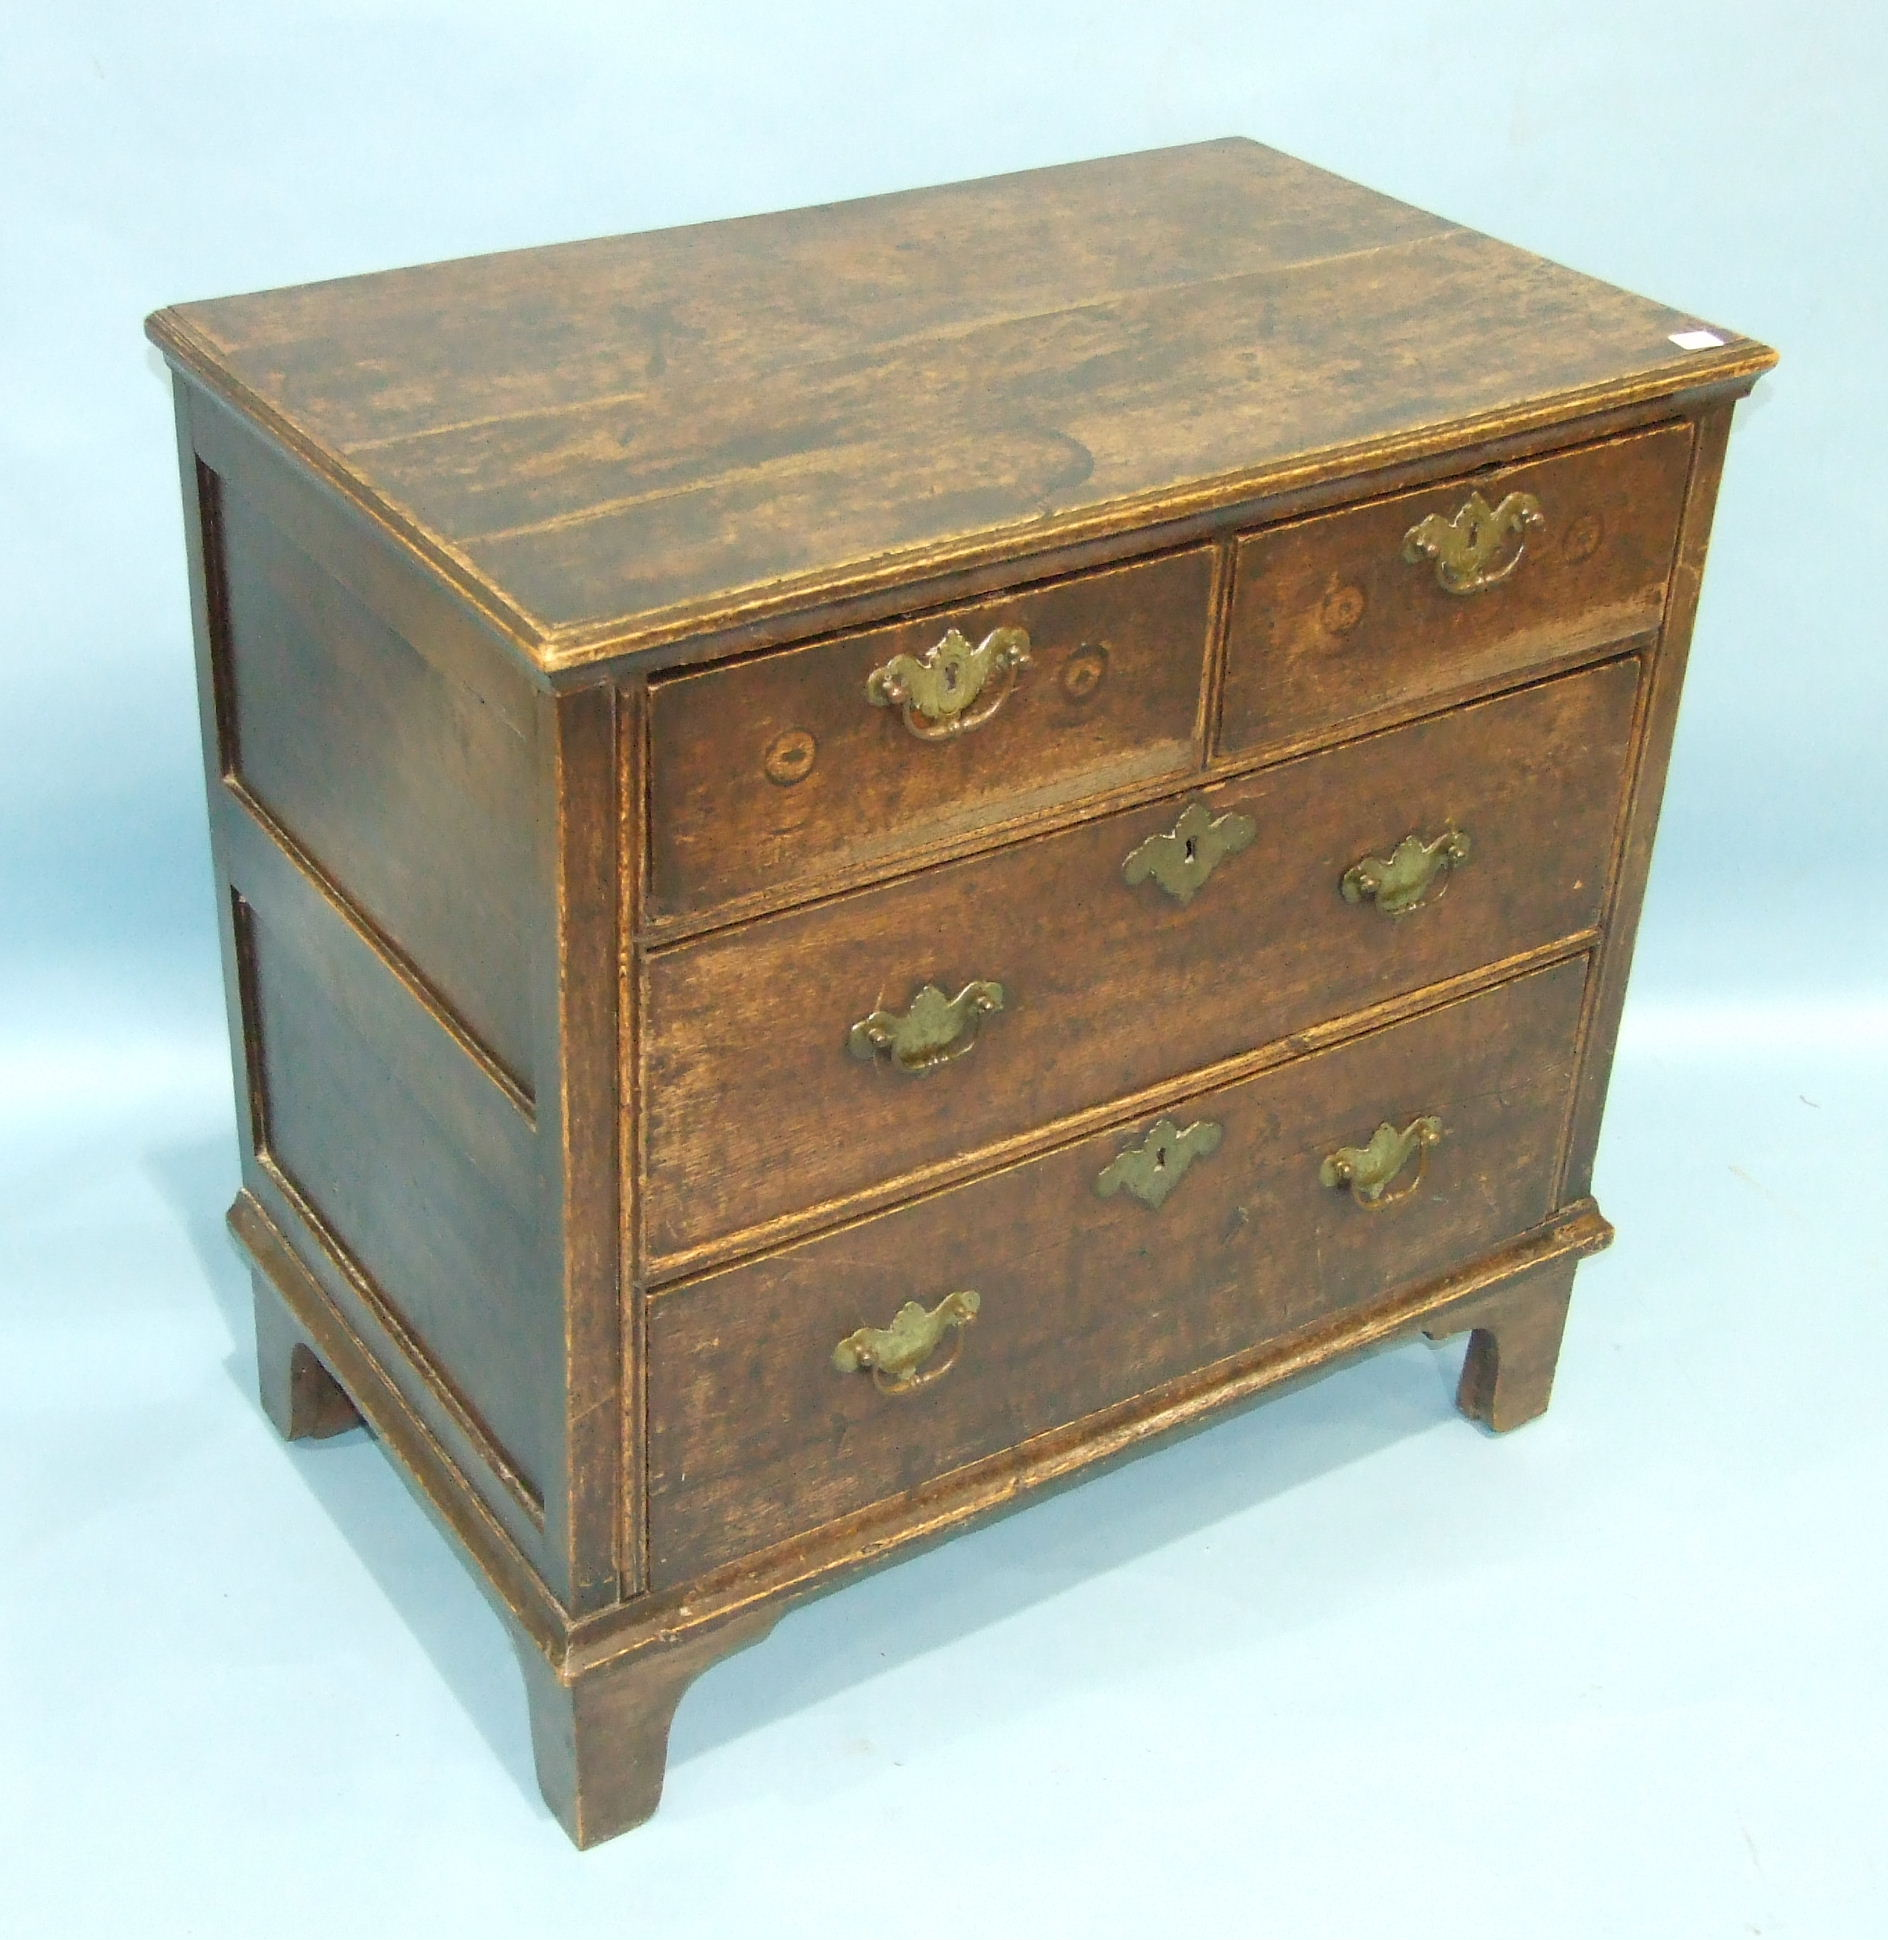 Lot 80 - A reconstructed antique oak chest of rectangular form, having two short and two long drawers, on